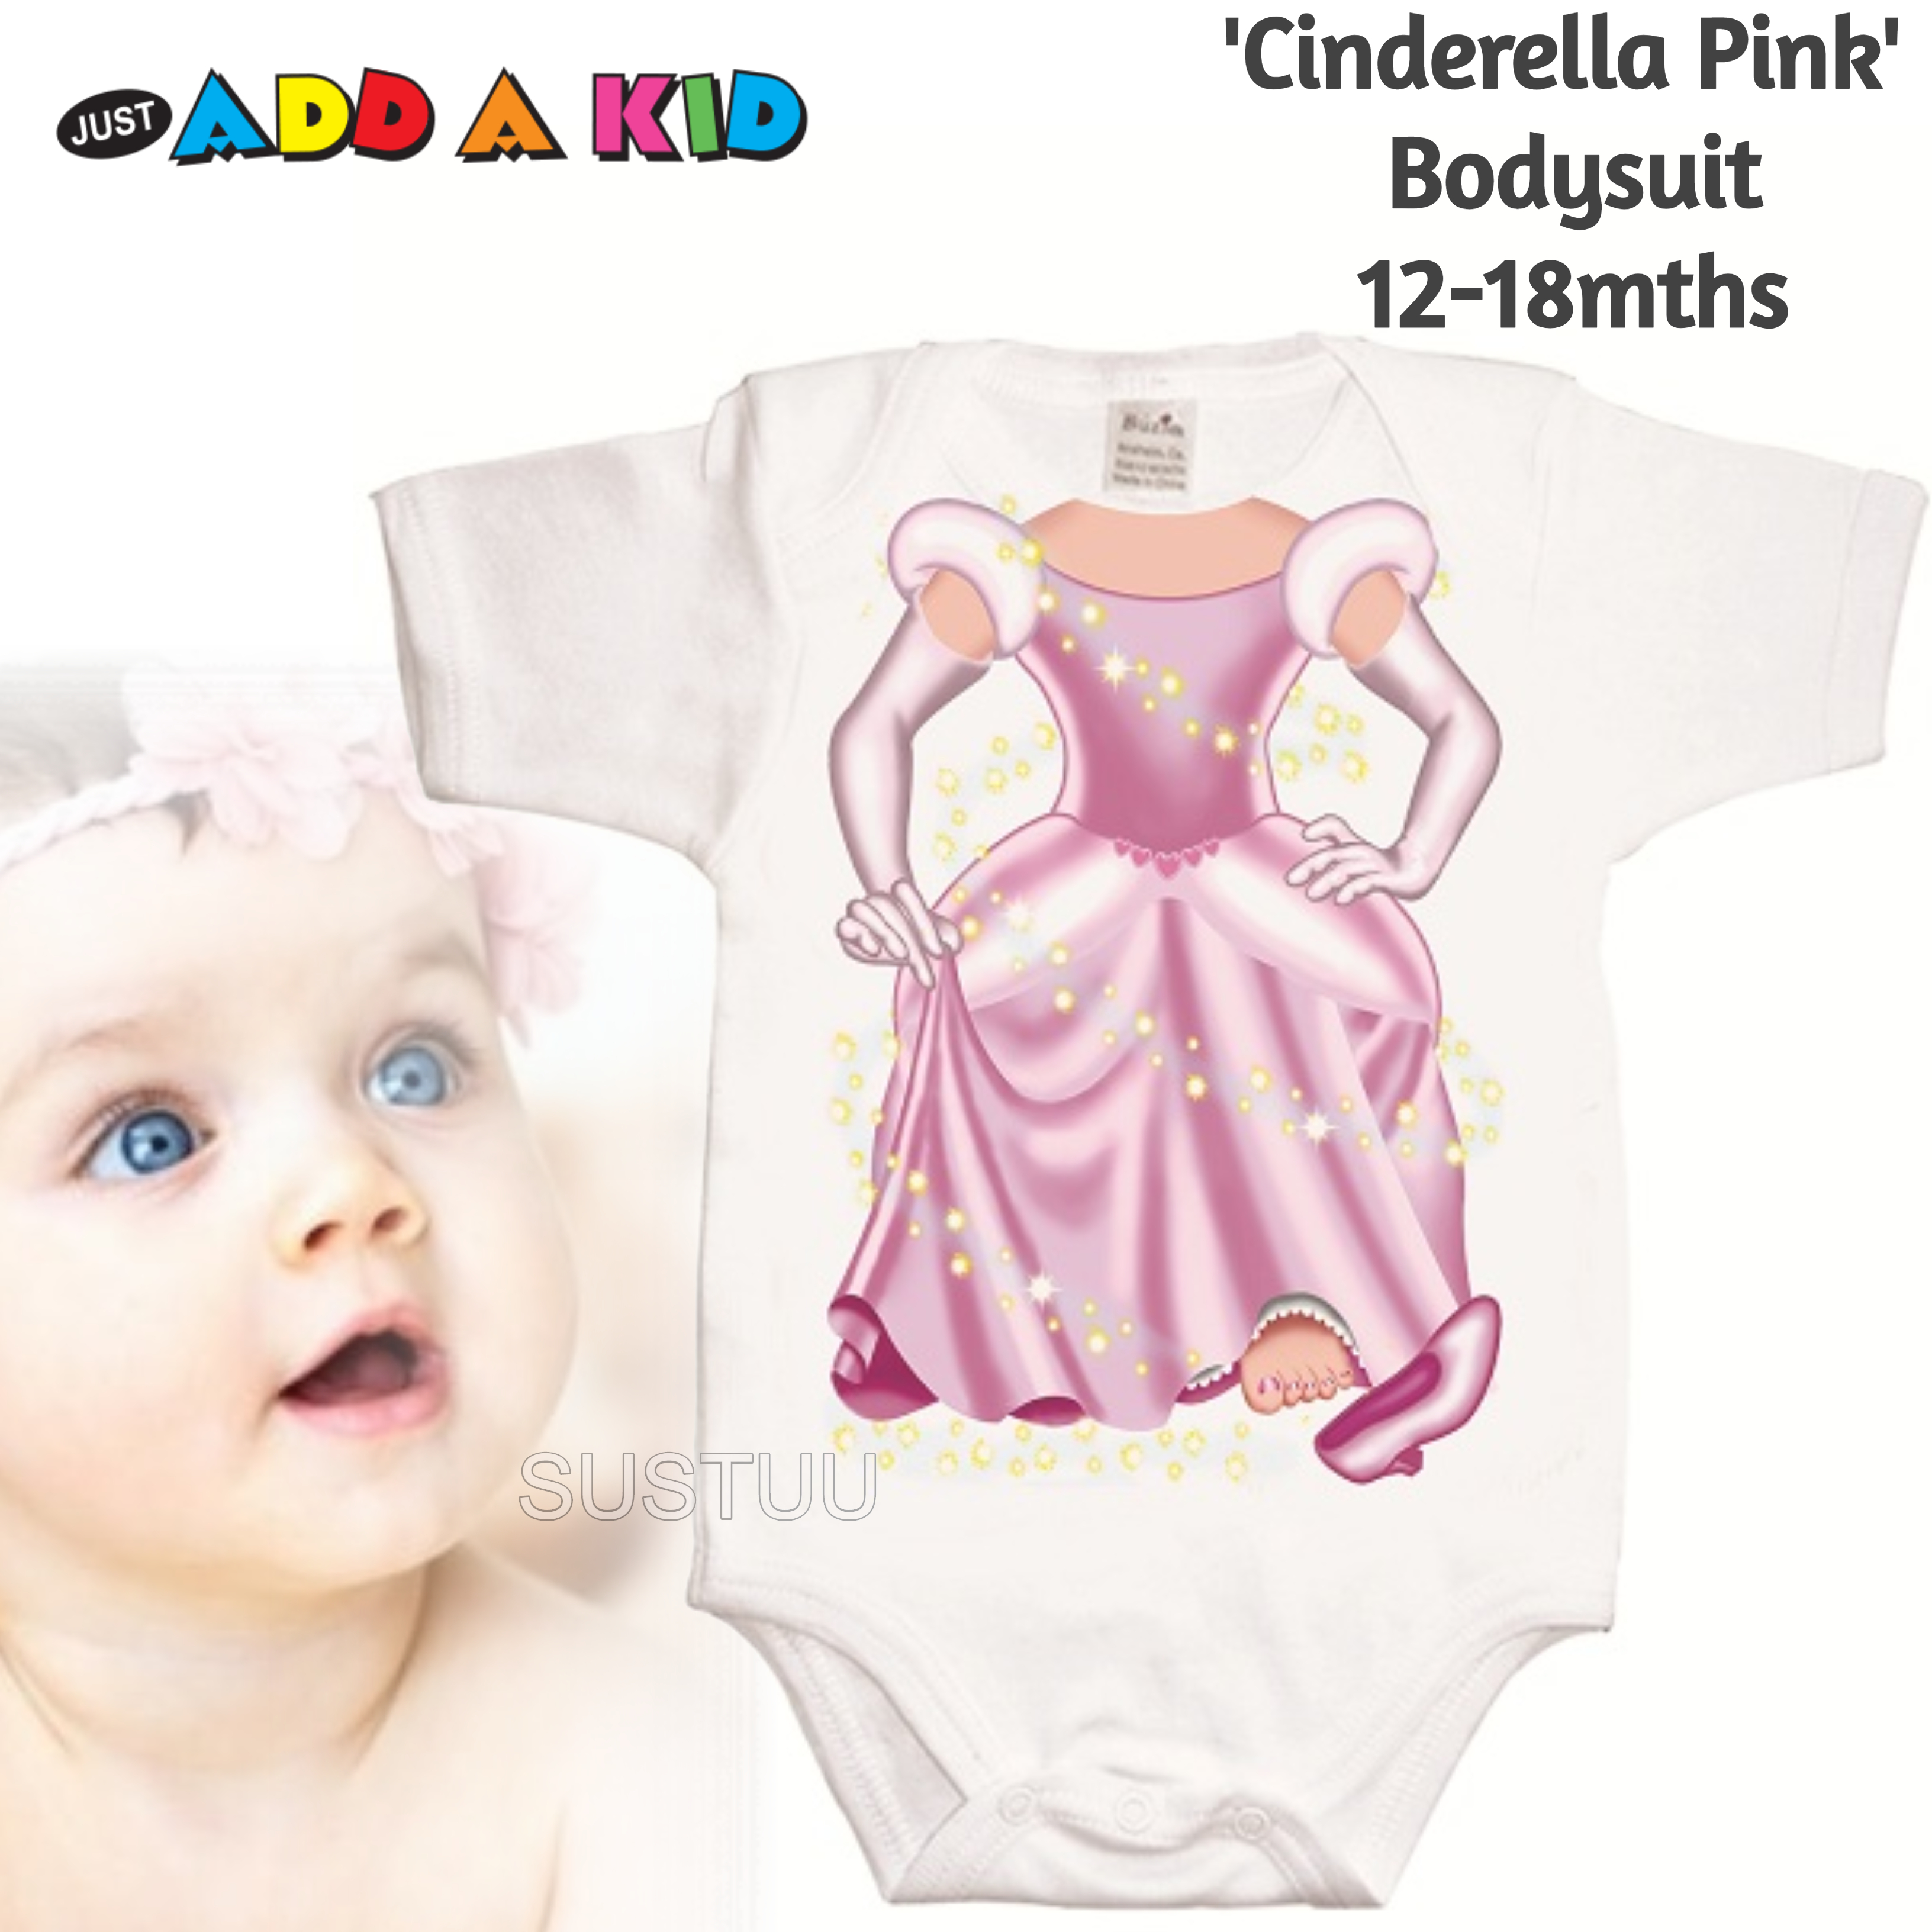 Just Add a Kid 'Cinderella Pink' Baby Short Sleeve Bodysuit | 100% Cotton | 12-18 Month